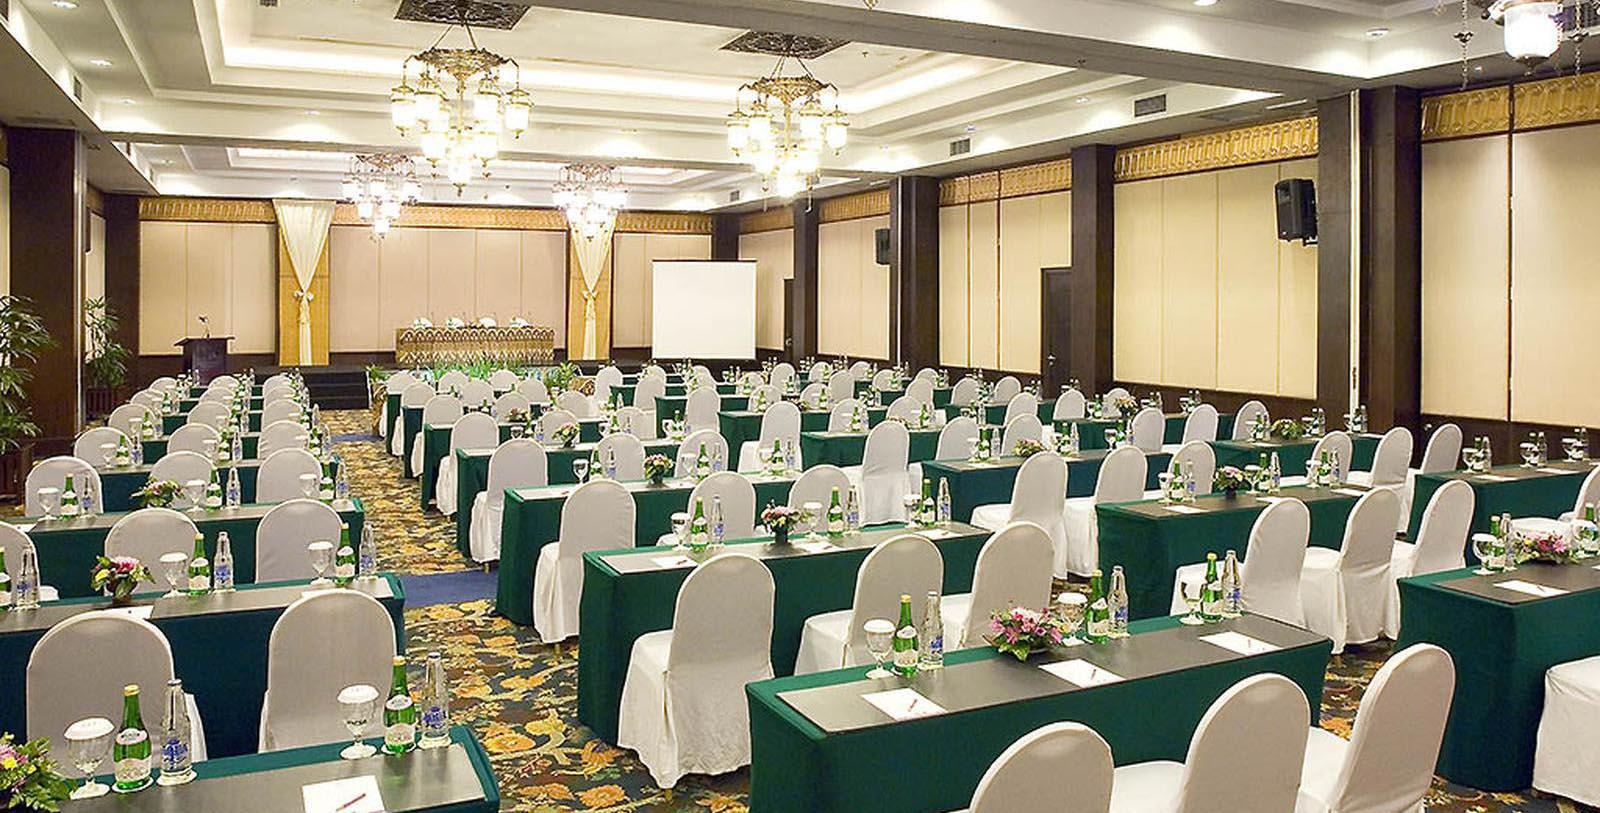 Image of Ballroom at The Phoenix Hotel Yogyakarta - MGallery by Sofitel, 1928, Member of Historic Hotels Worldwide, in Yogyakarta, Indonesia, Experience